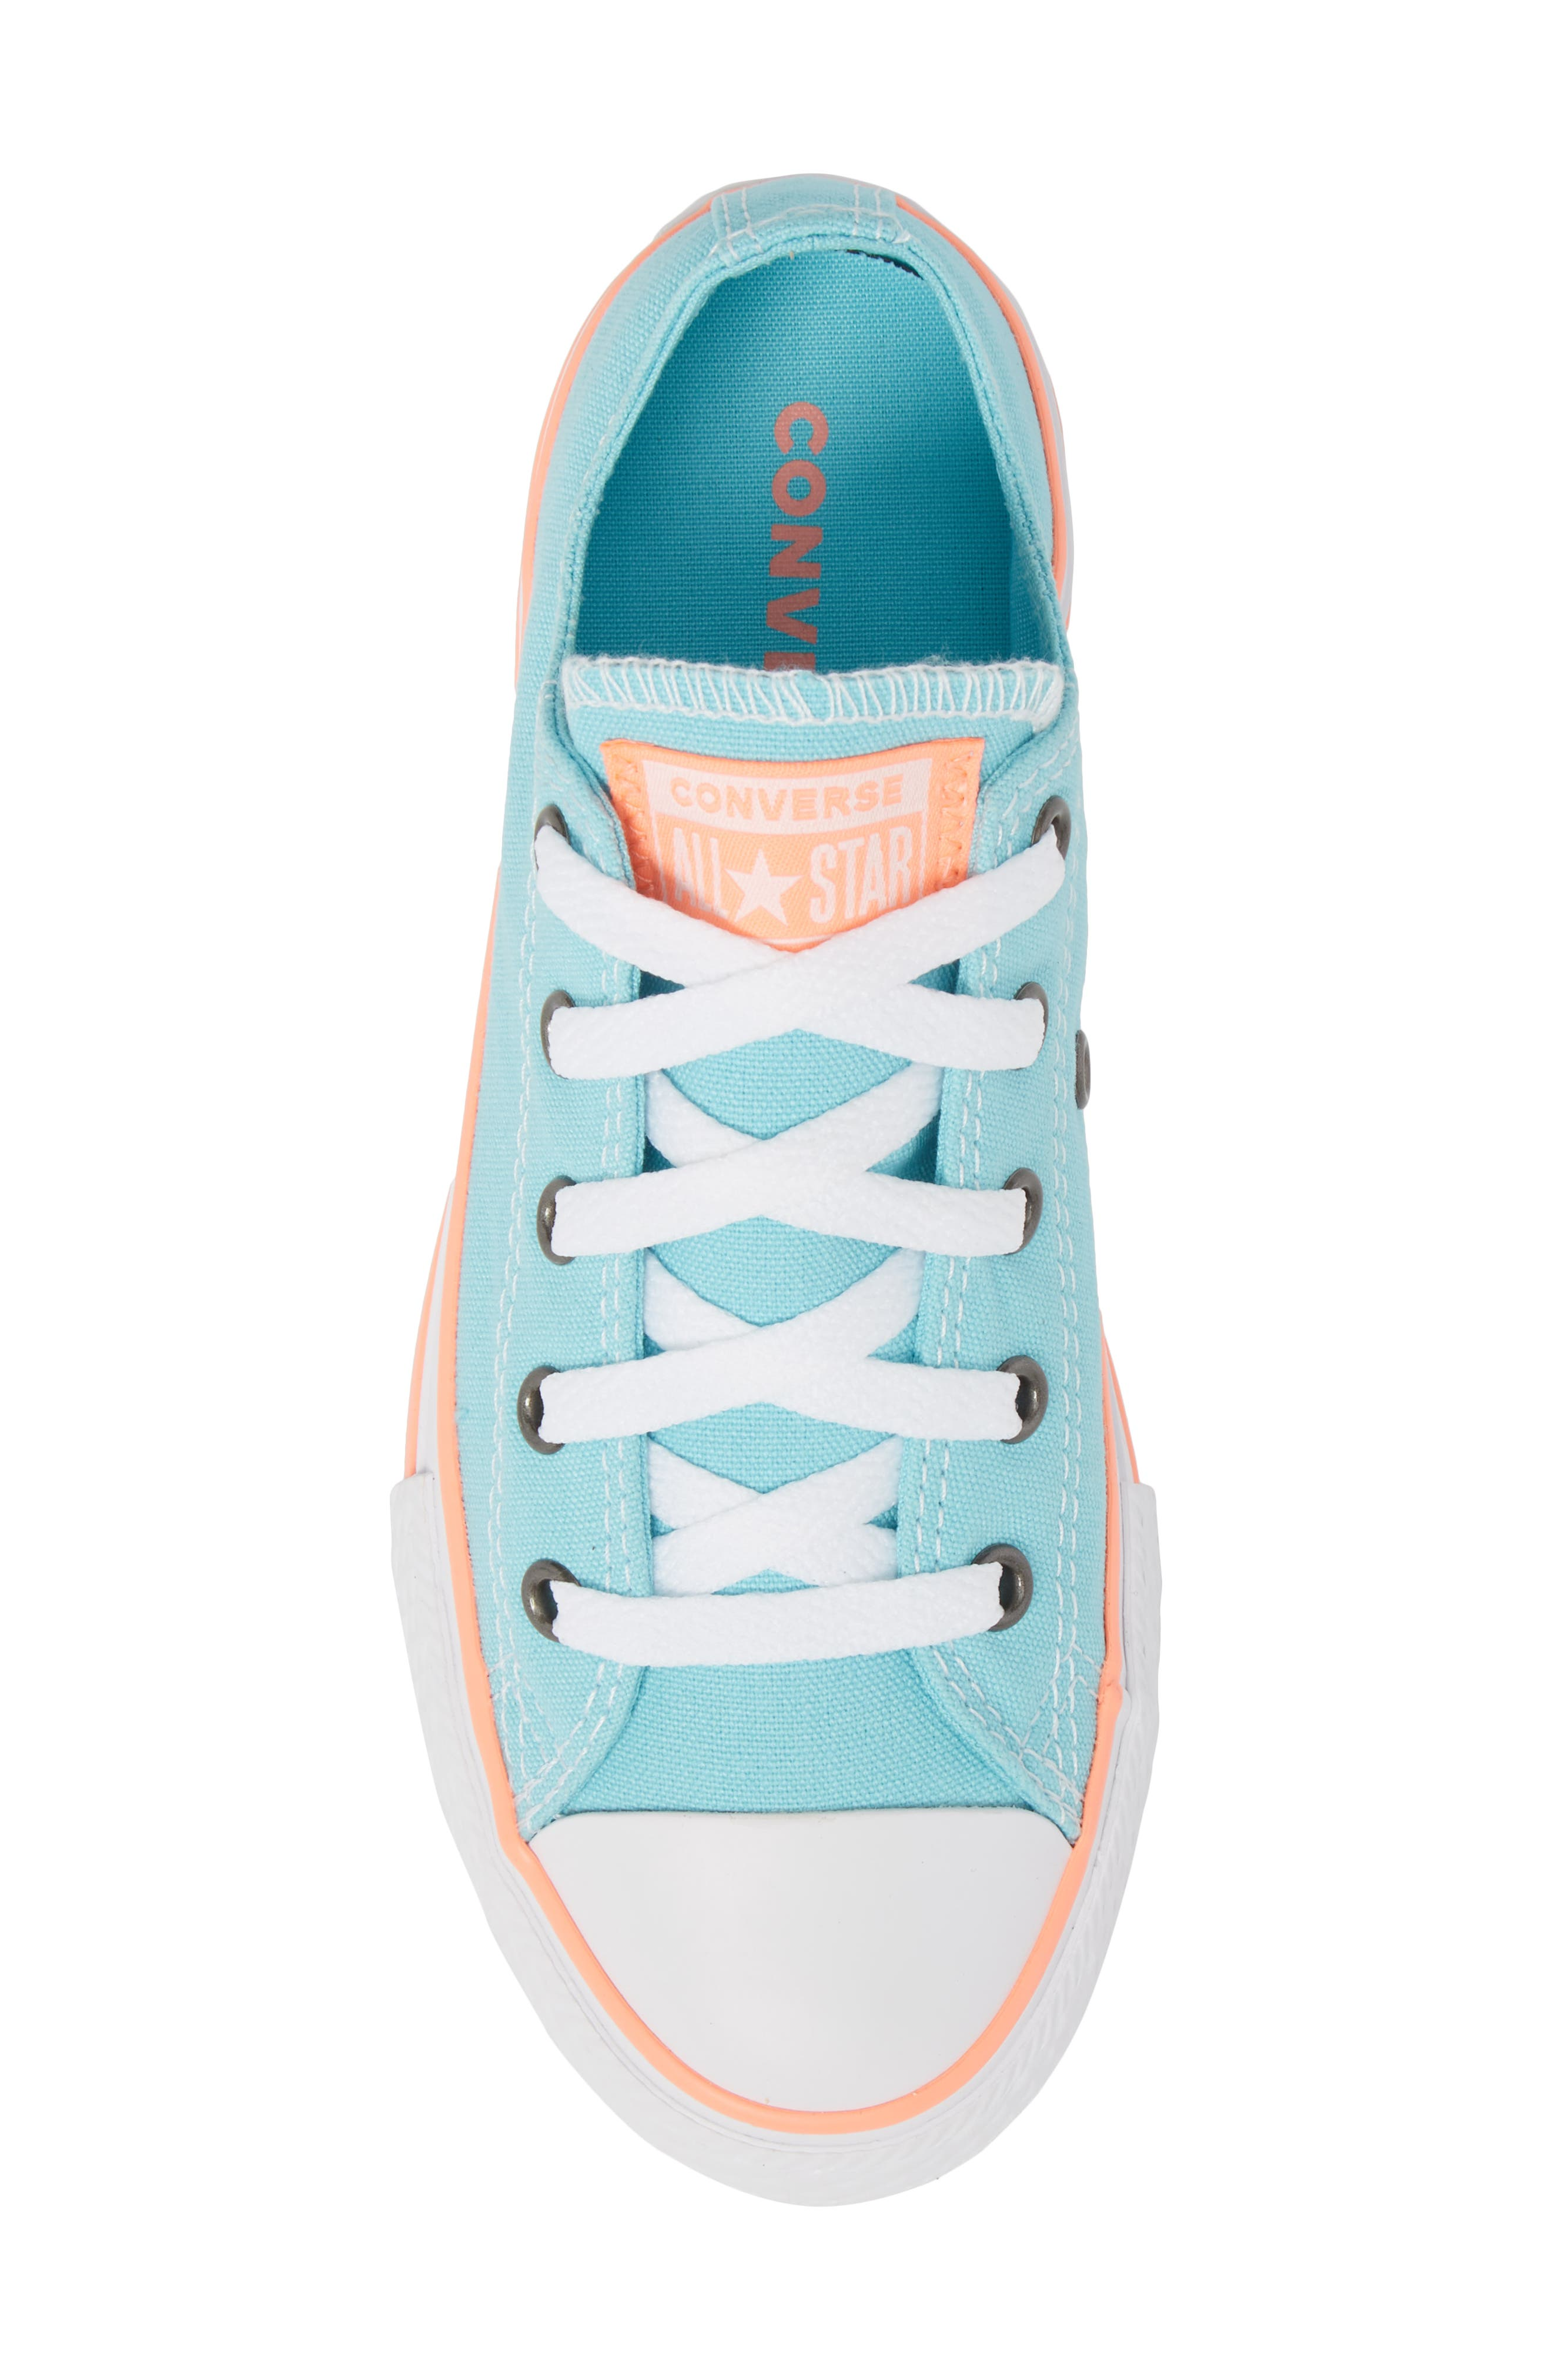 All Star<sup>®</sup> Low Top Sneaker,                             Alternate thumbnail 5, color,                             486